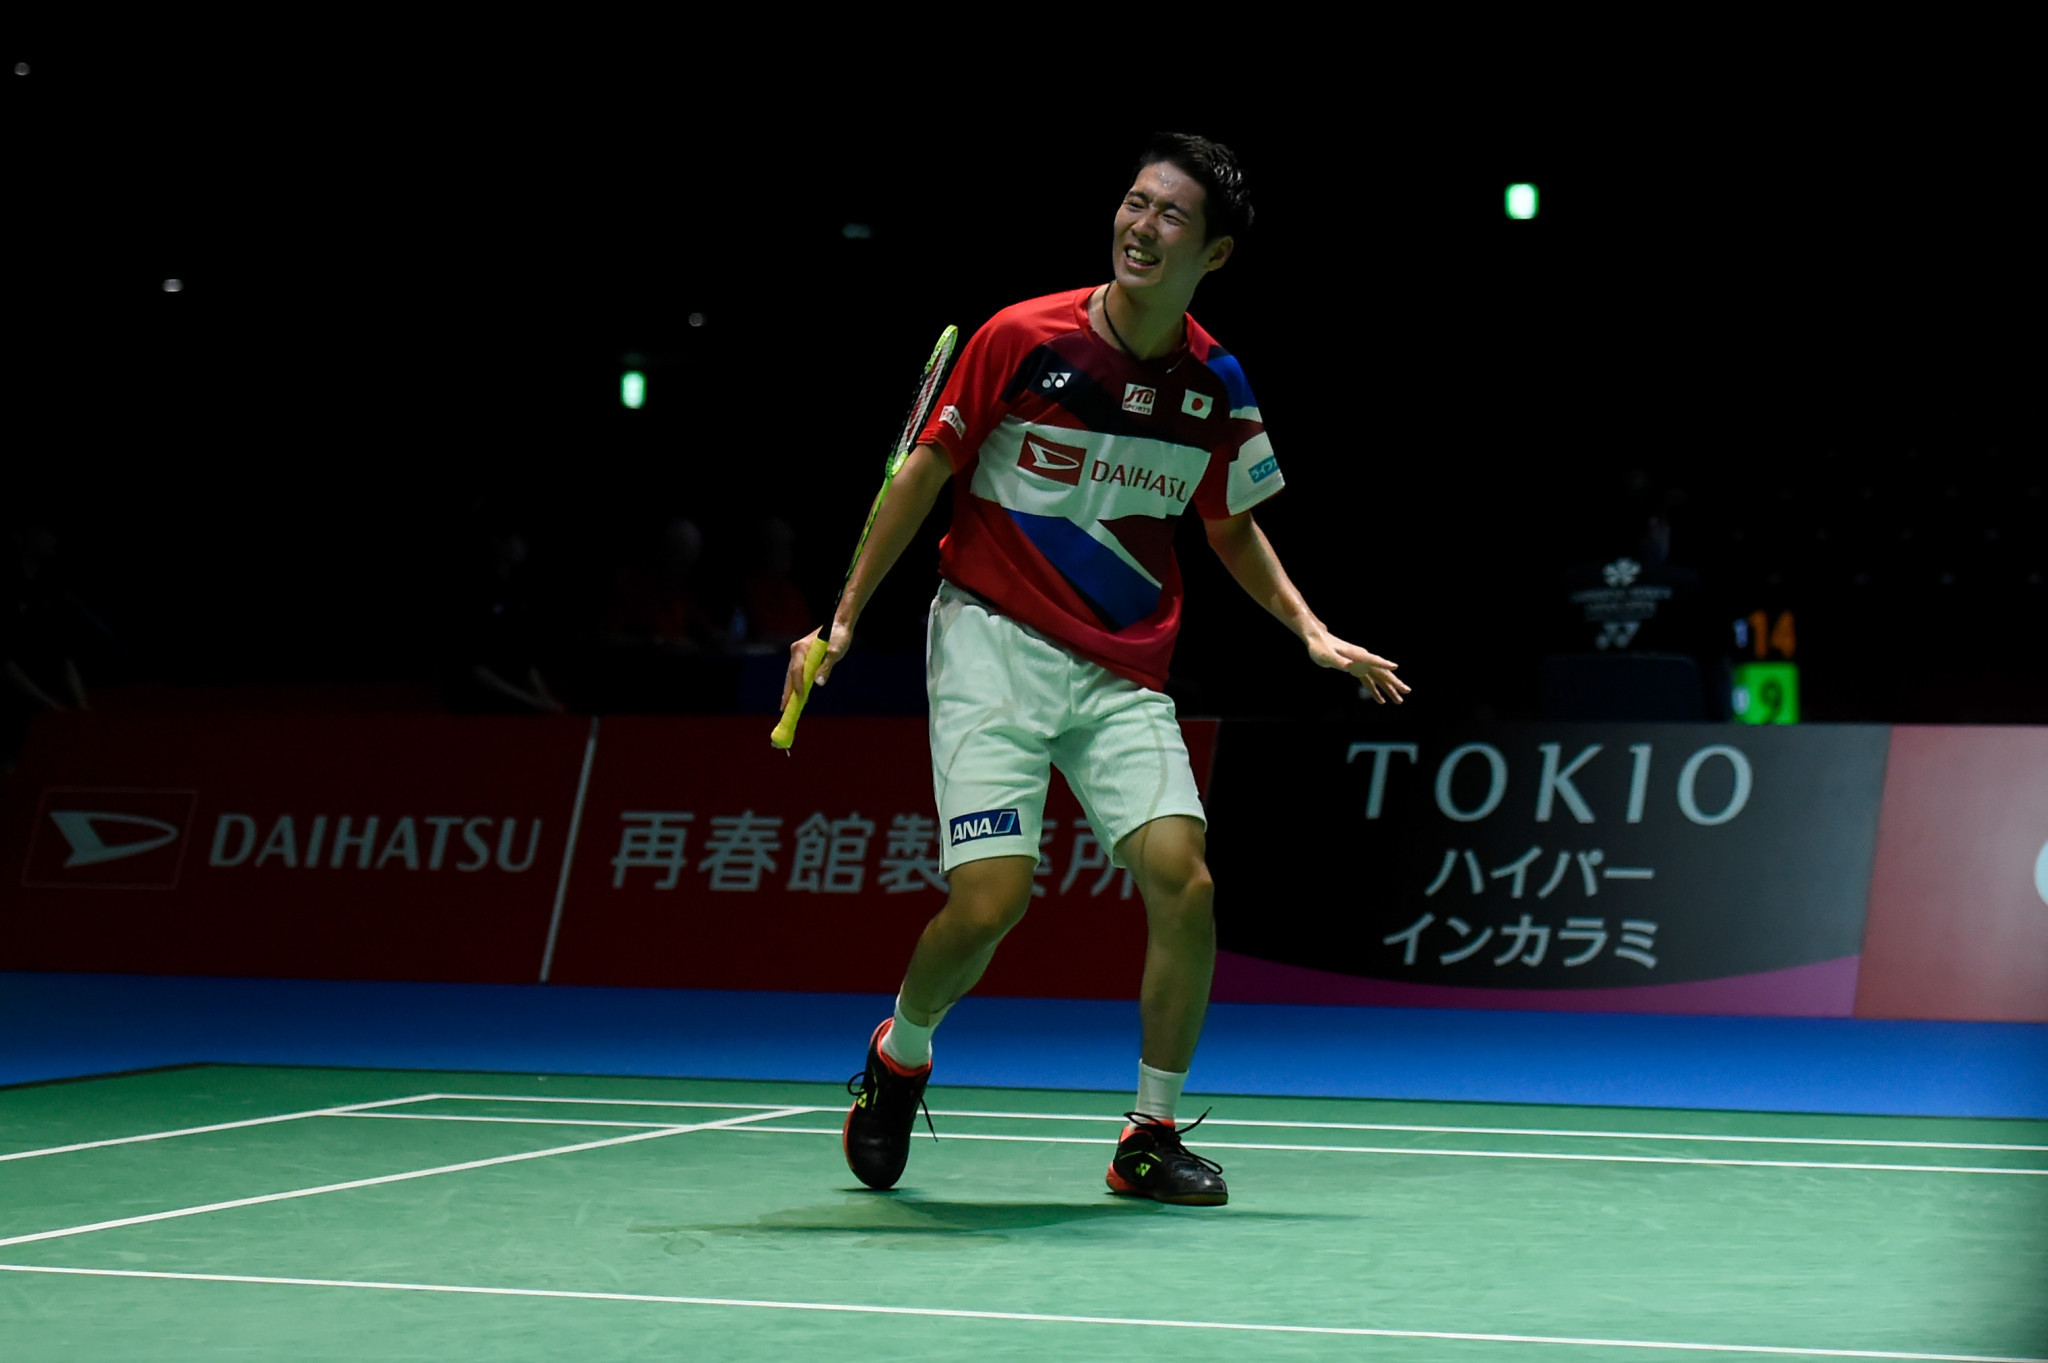 Olympic champion knocked out as badminton's Tokyo 2020 test event begins